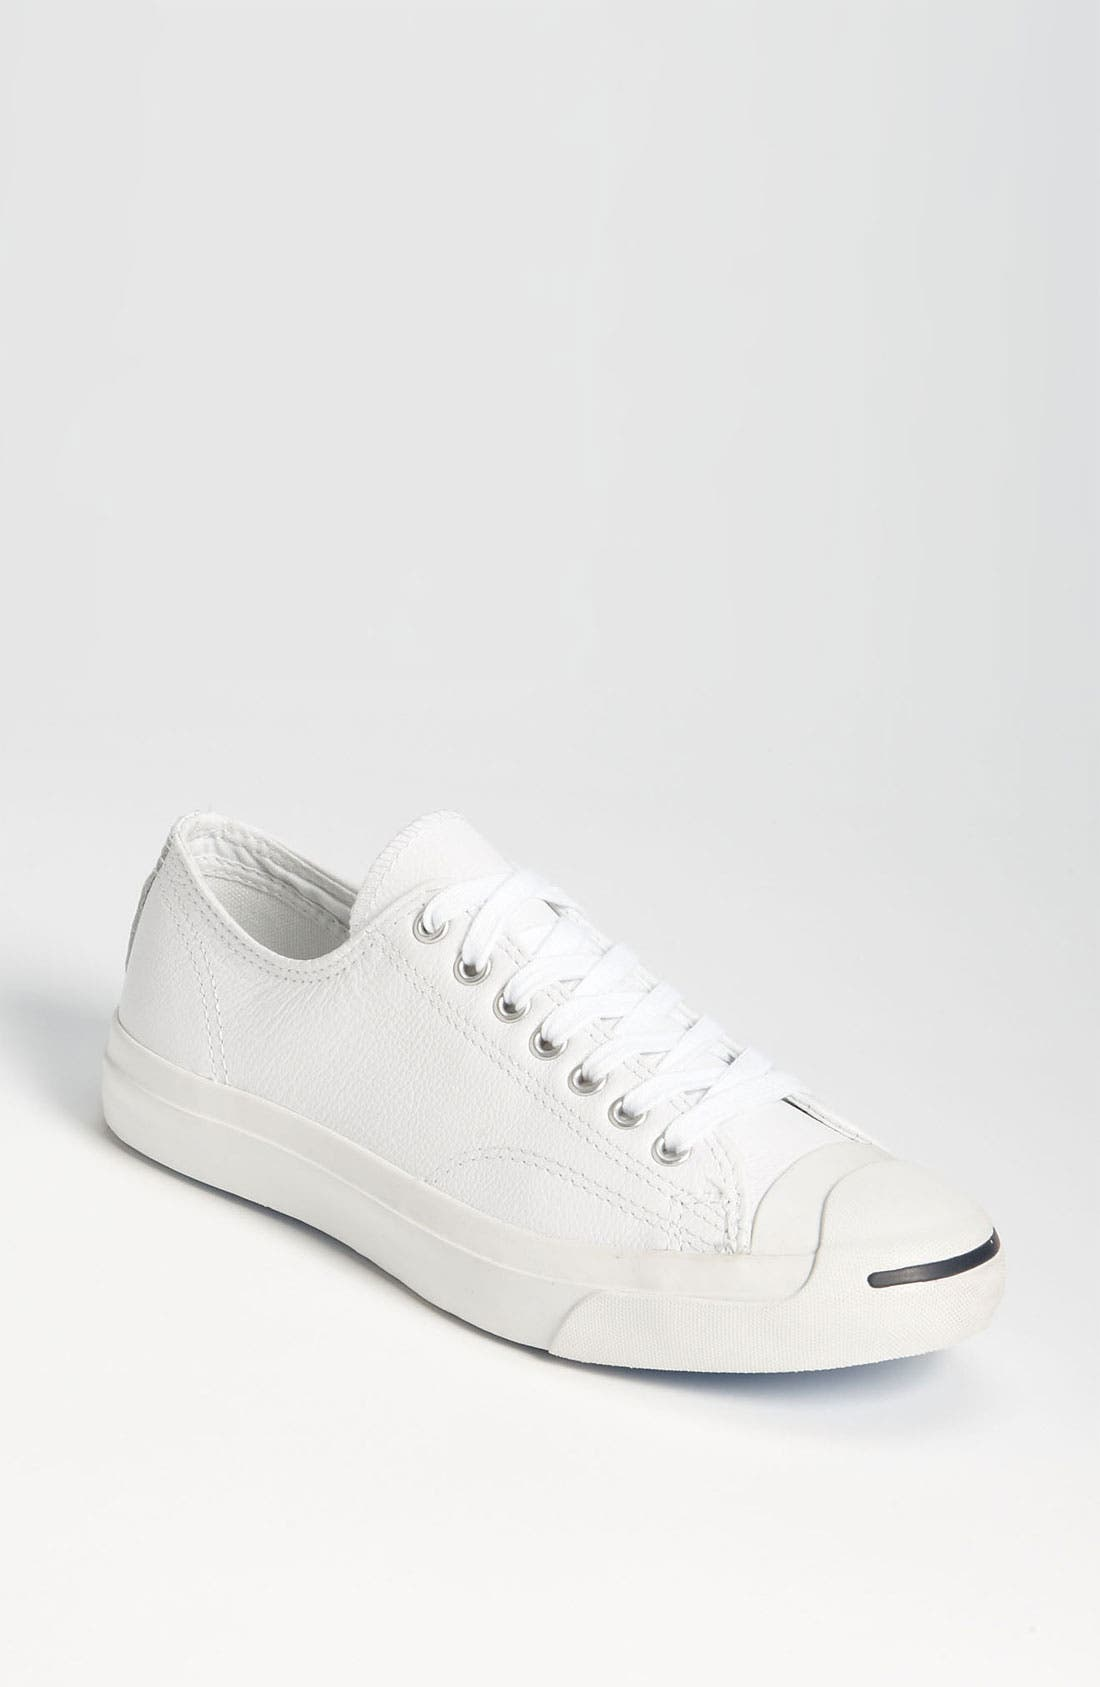 Alternate Image 1 Selected - Converse 'Jack Purcell' Leather Sneaker (Women)